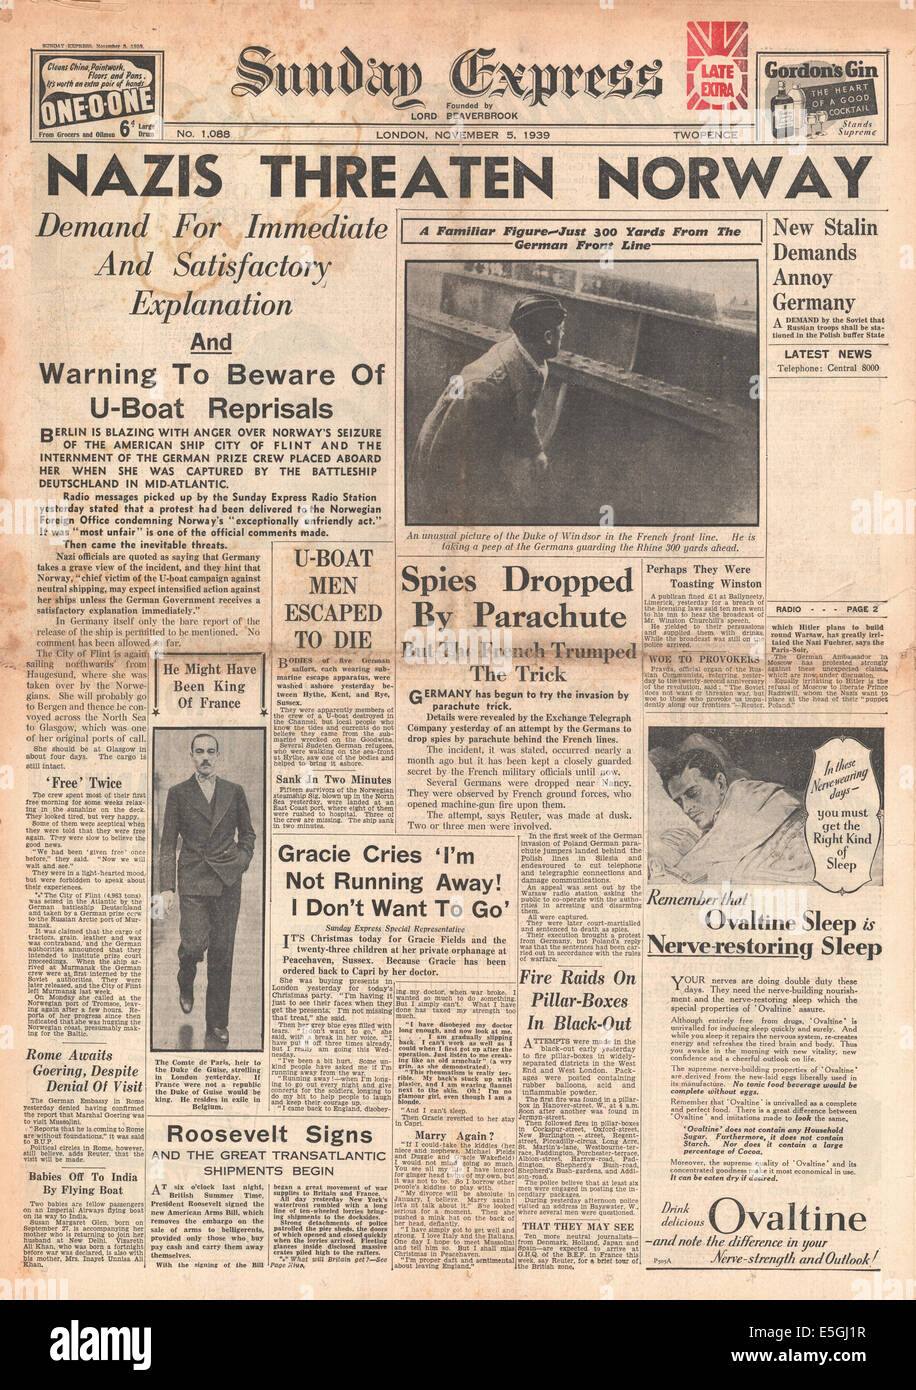 1939 Sunday Express front page reporting Nazi threat to Norway Stock